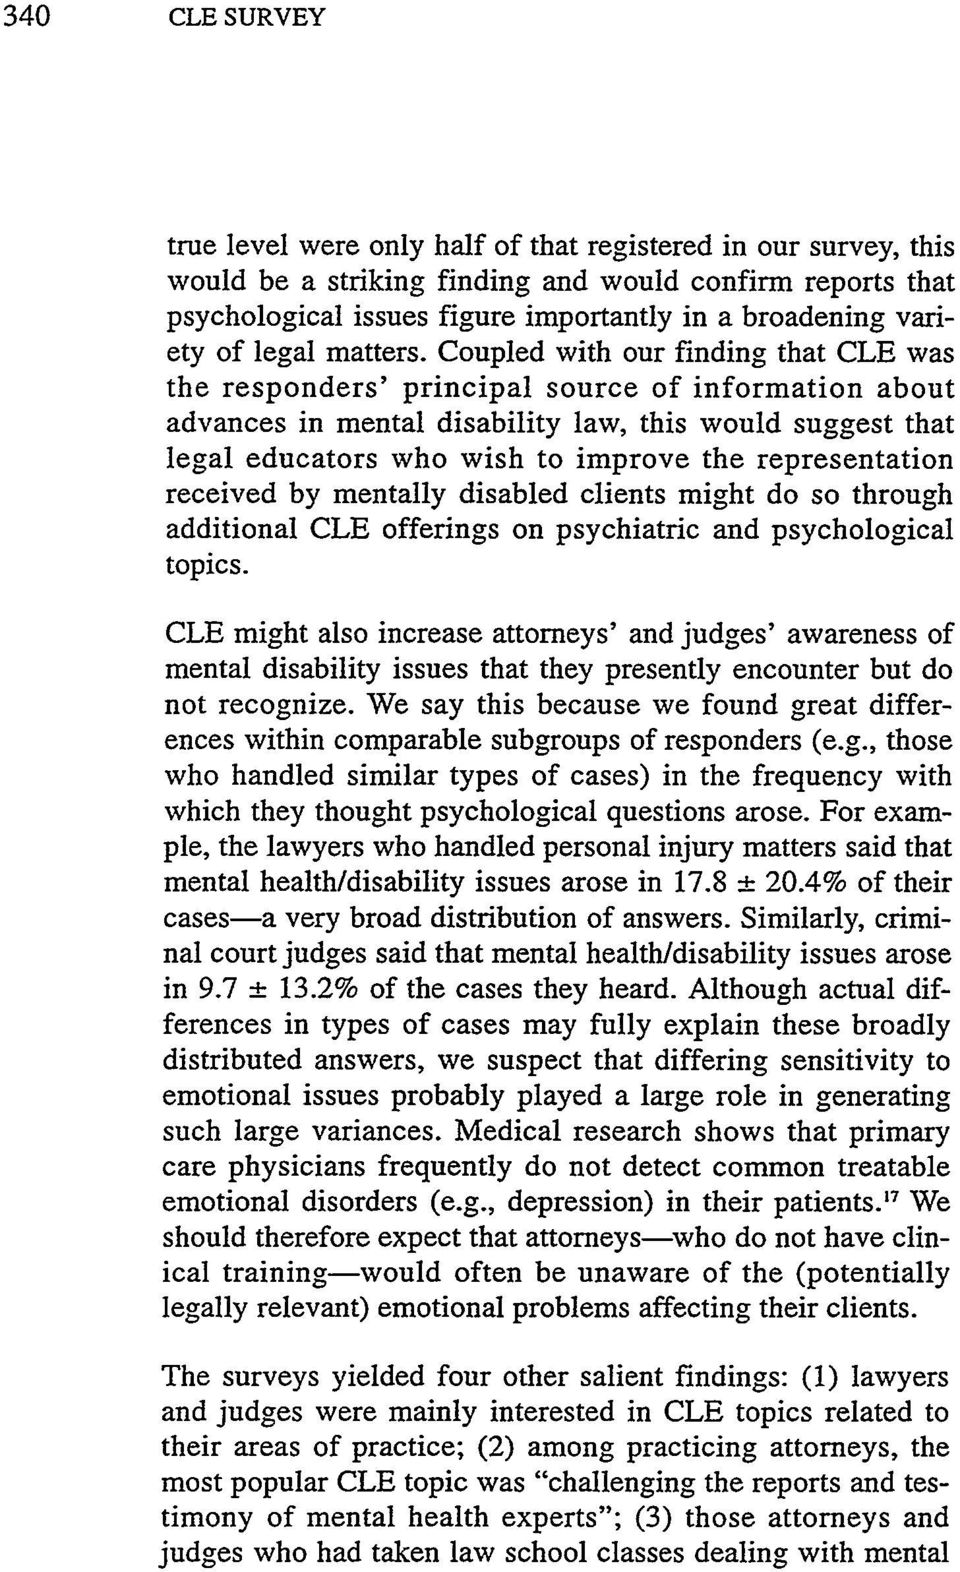 Coupled with our finding that CLE was the responders' principal source of information about advances in mental disability law, this would suggest that legal educators who wish to improve the